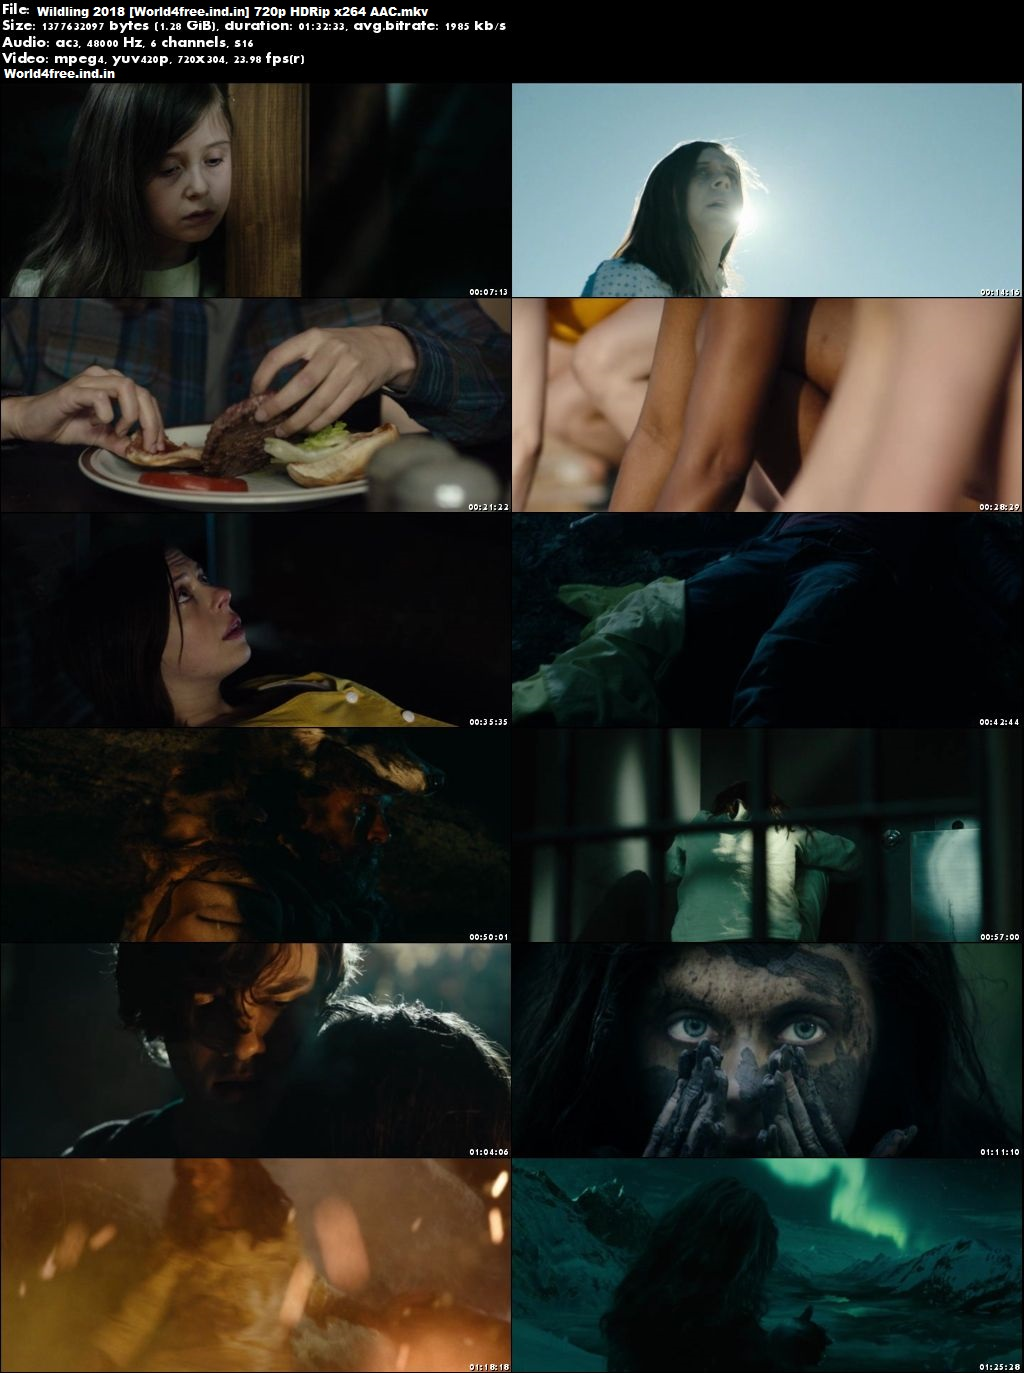 Wildling 2018 world4free.ind.in Full HDRip 720p English Movie Download